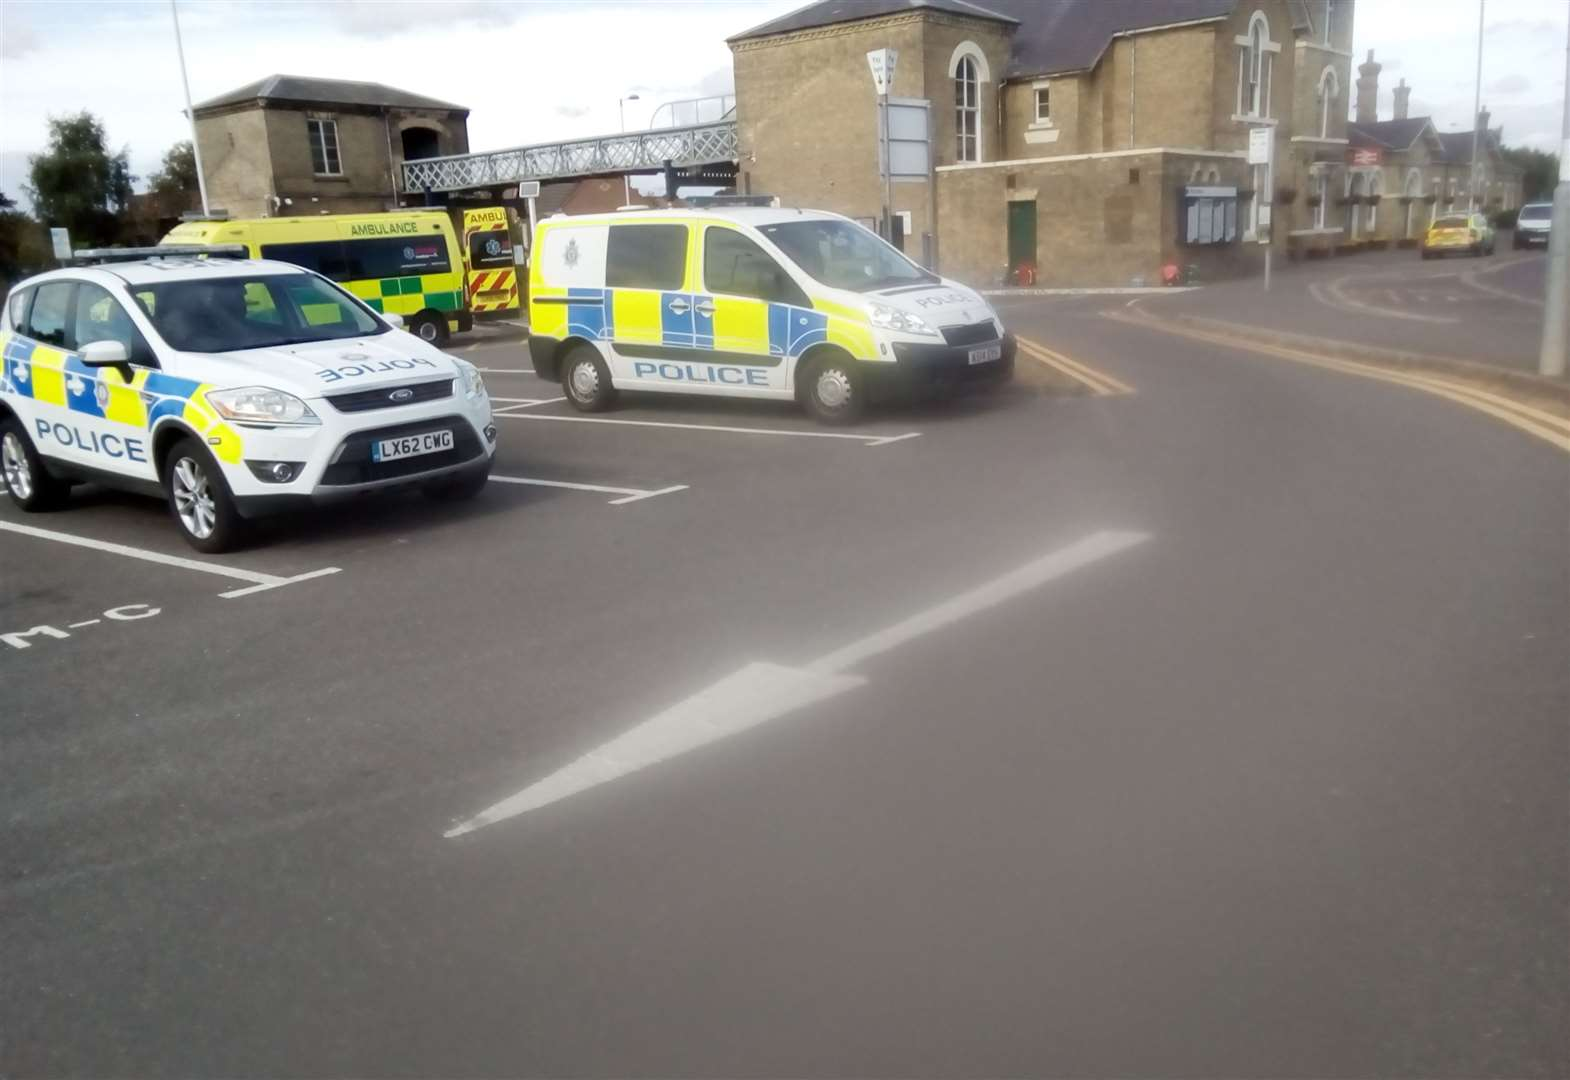 Full-scale response to railway station incident